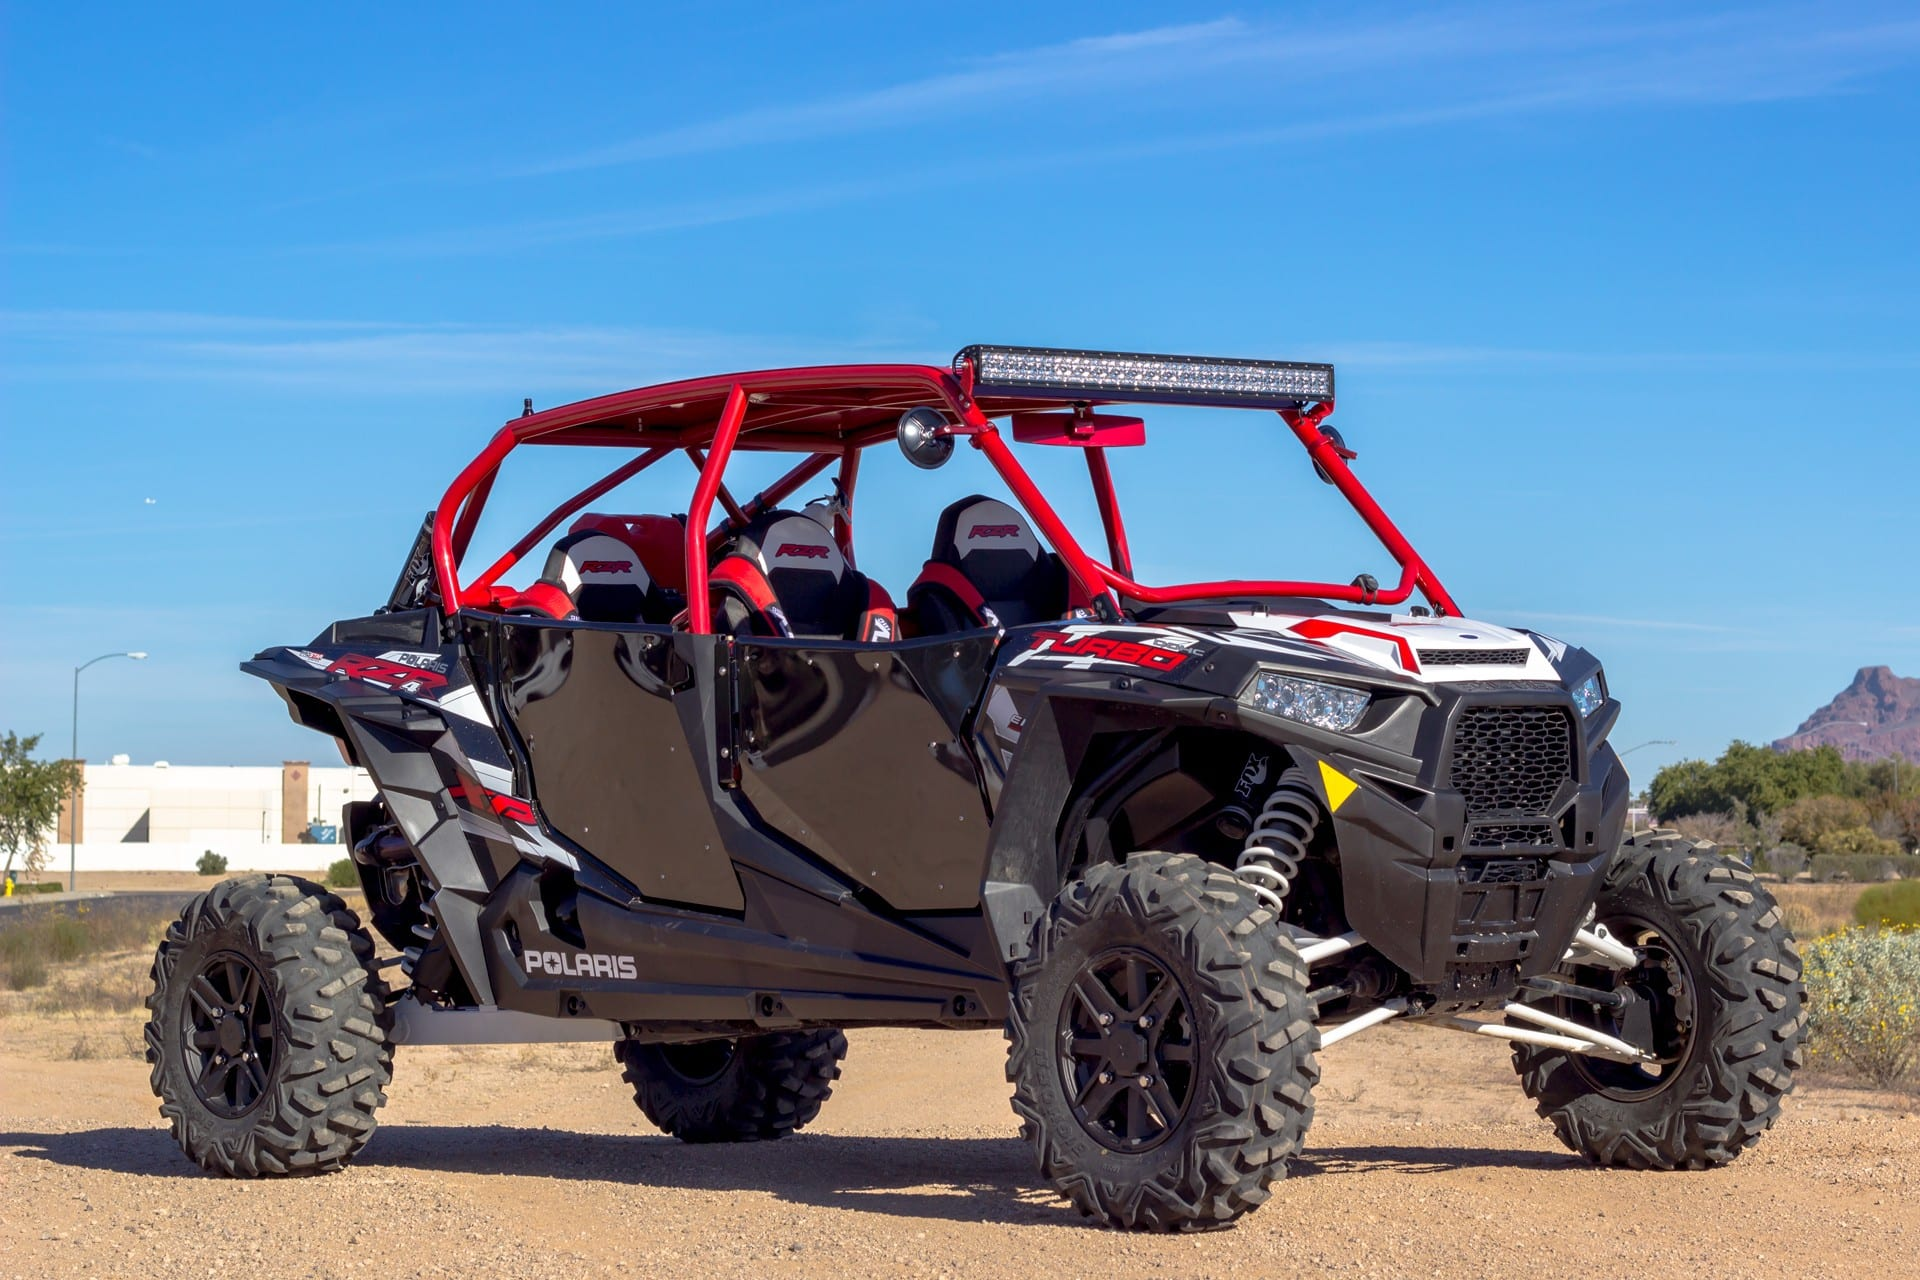 2016 Polaris Rzr Xp Turbo Engine Recall Cyclevin